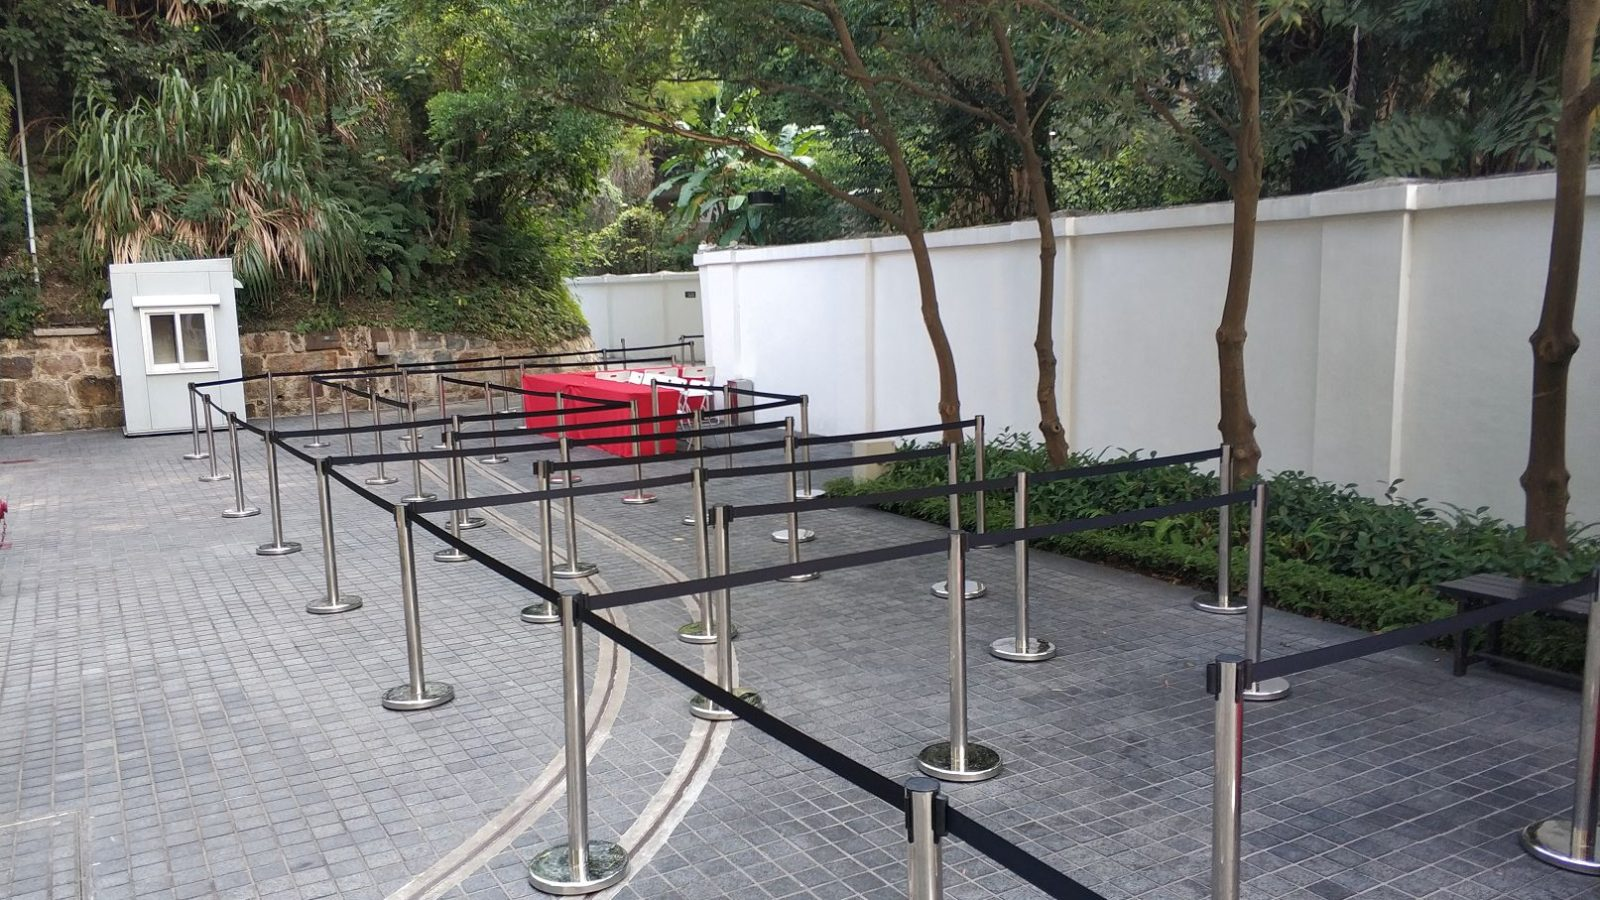 排隊柱租用, Stanchion rental